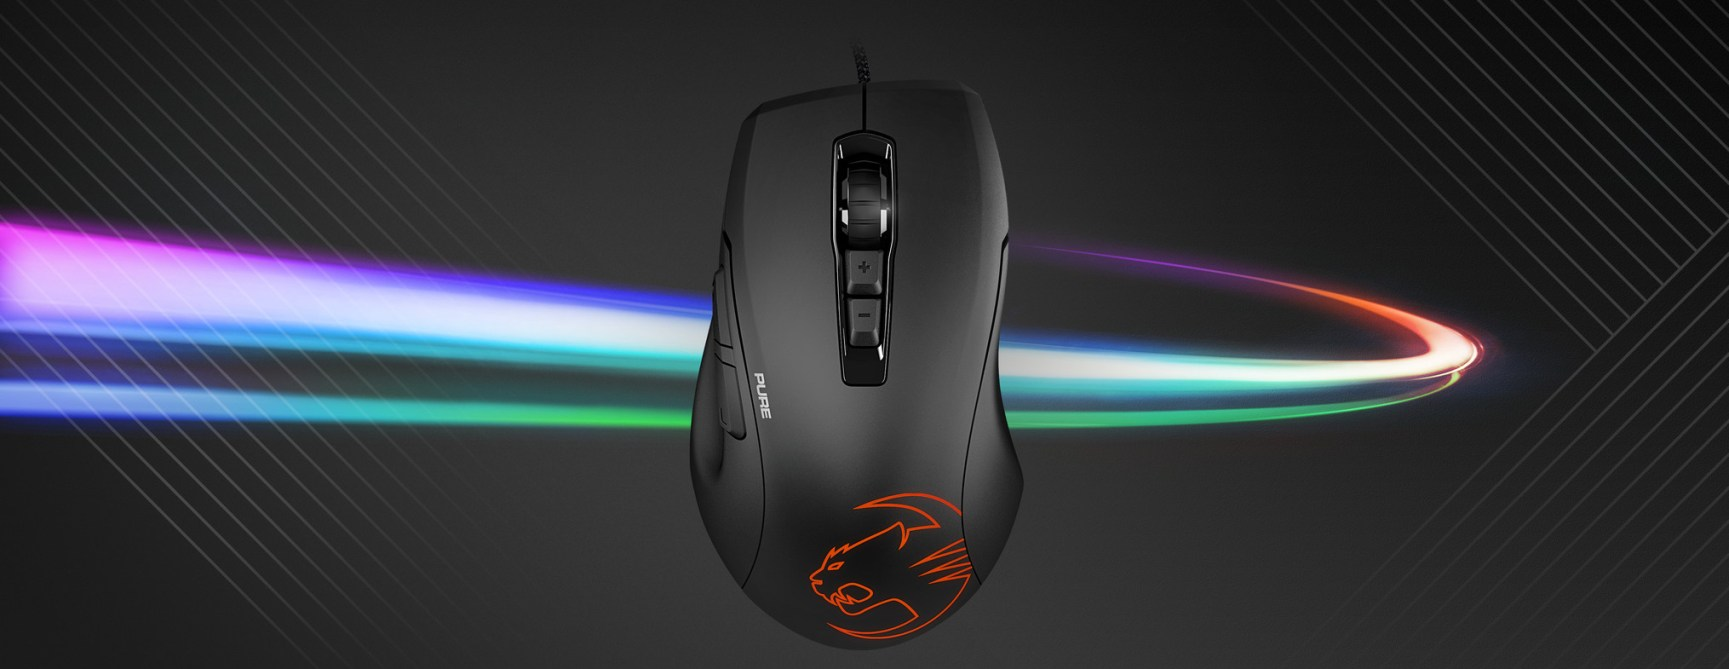 0b6e38d08ca Roccat Kone Pure Owl-Eye review: light and affordable - Review ...